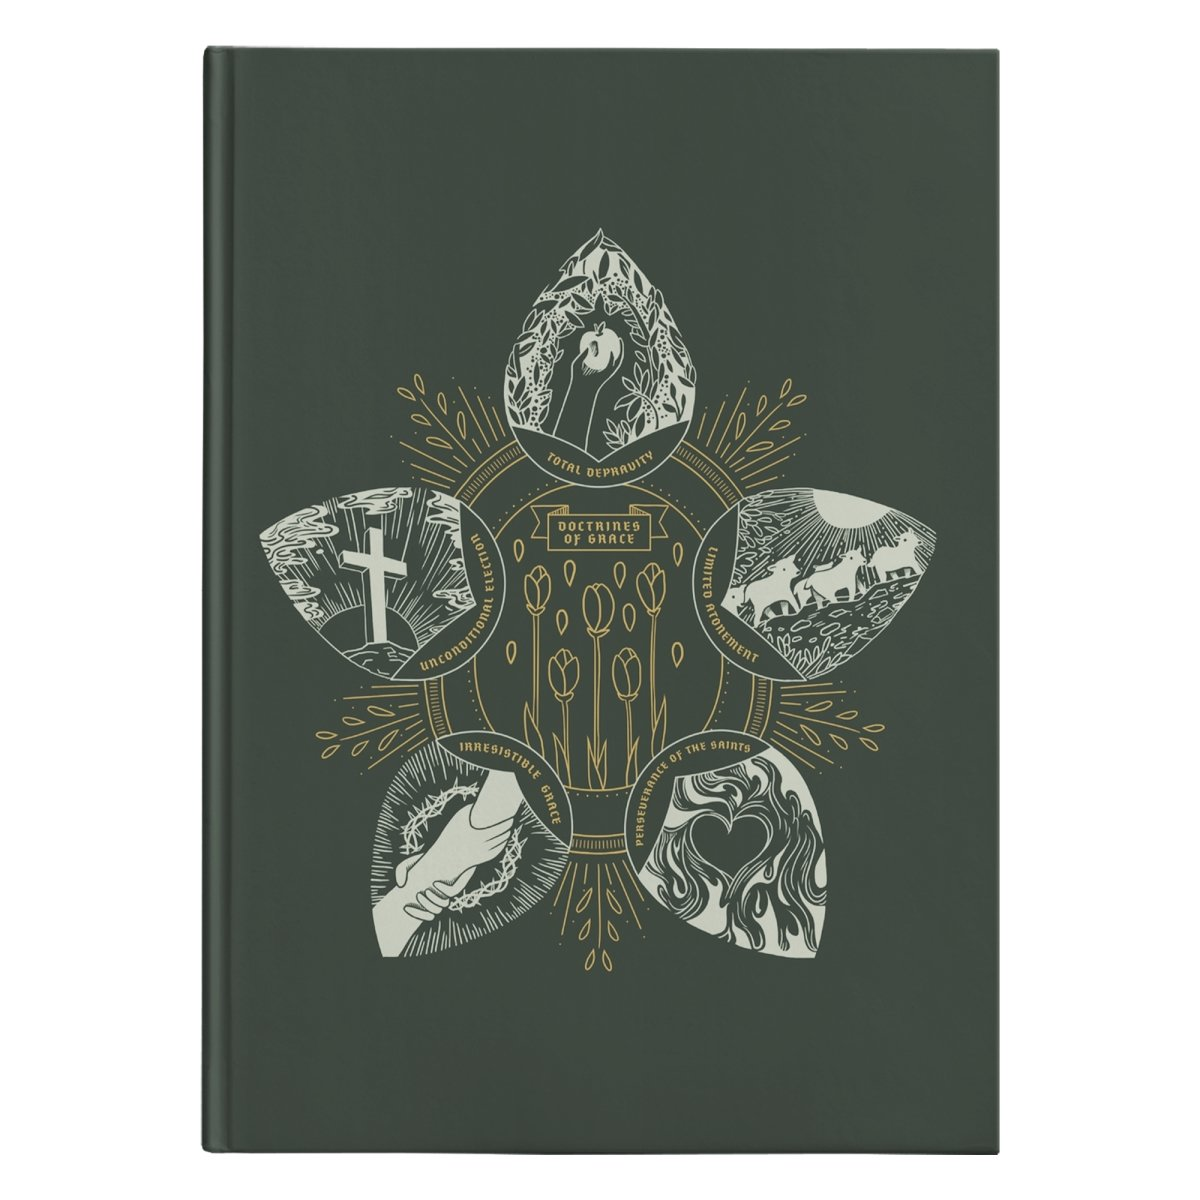 Doctrines of Grace (150 page Hardcover Journal) - SDG Clothing